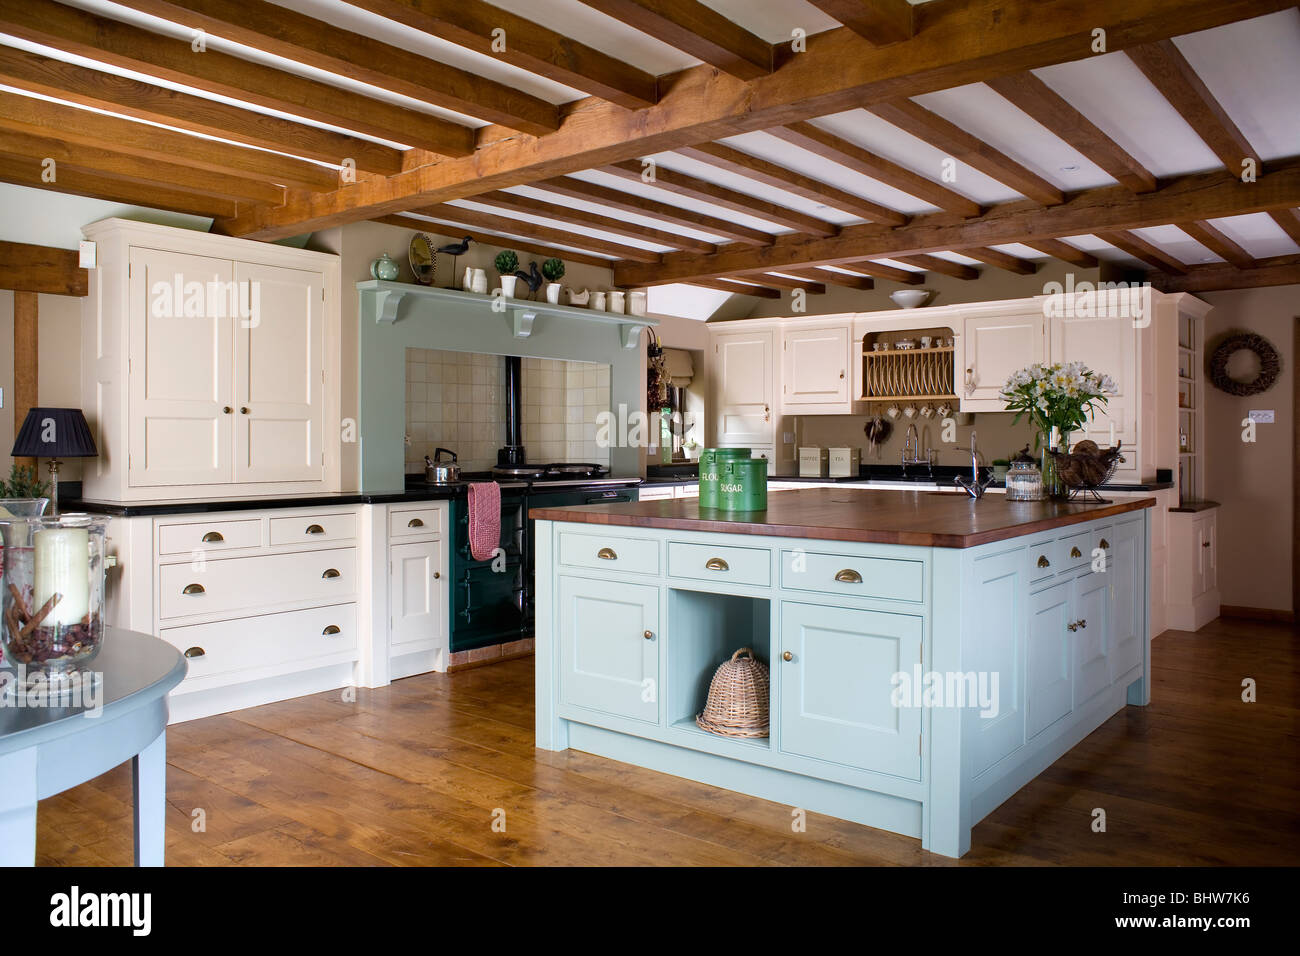 Pastel blue island unit in large cream country kitchen with ...